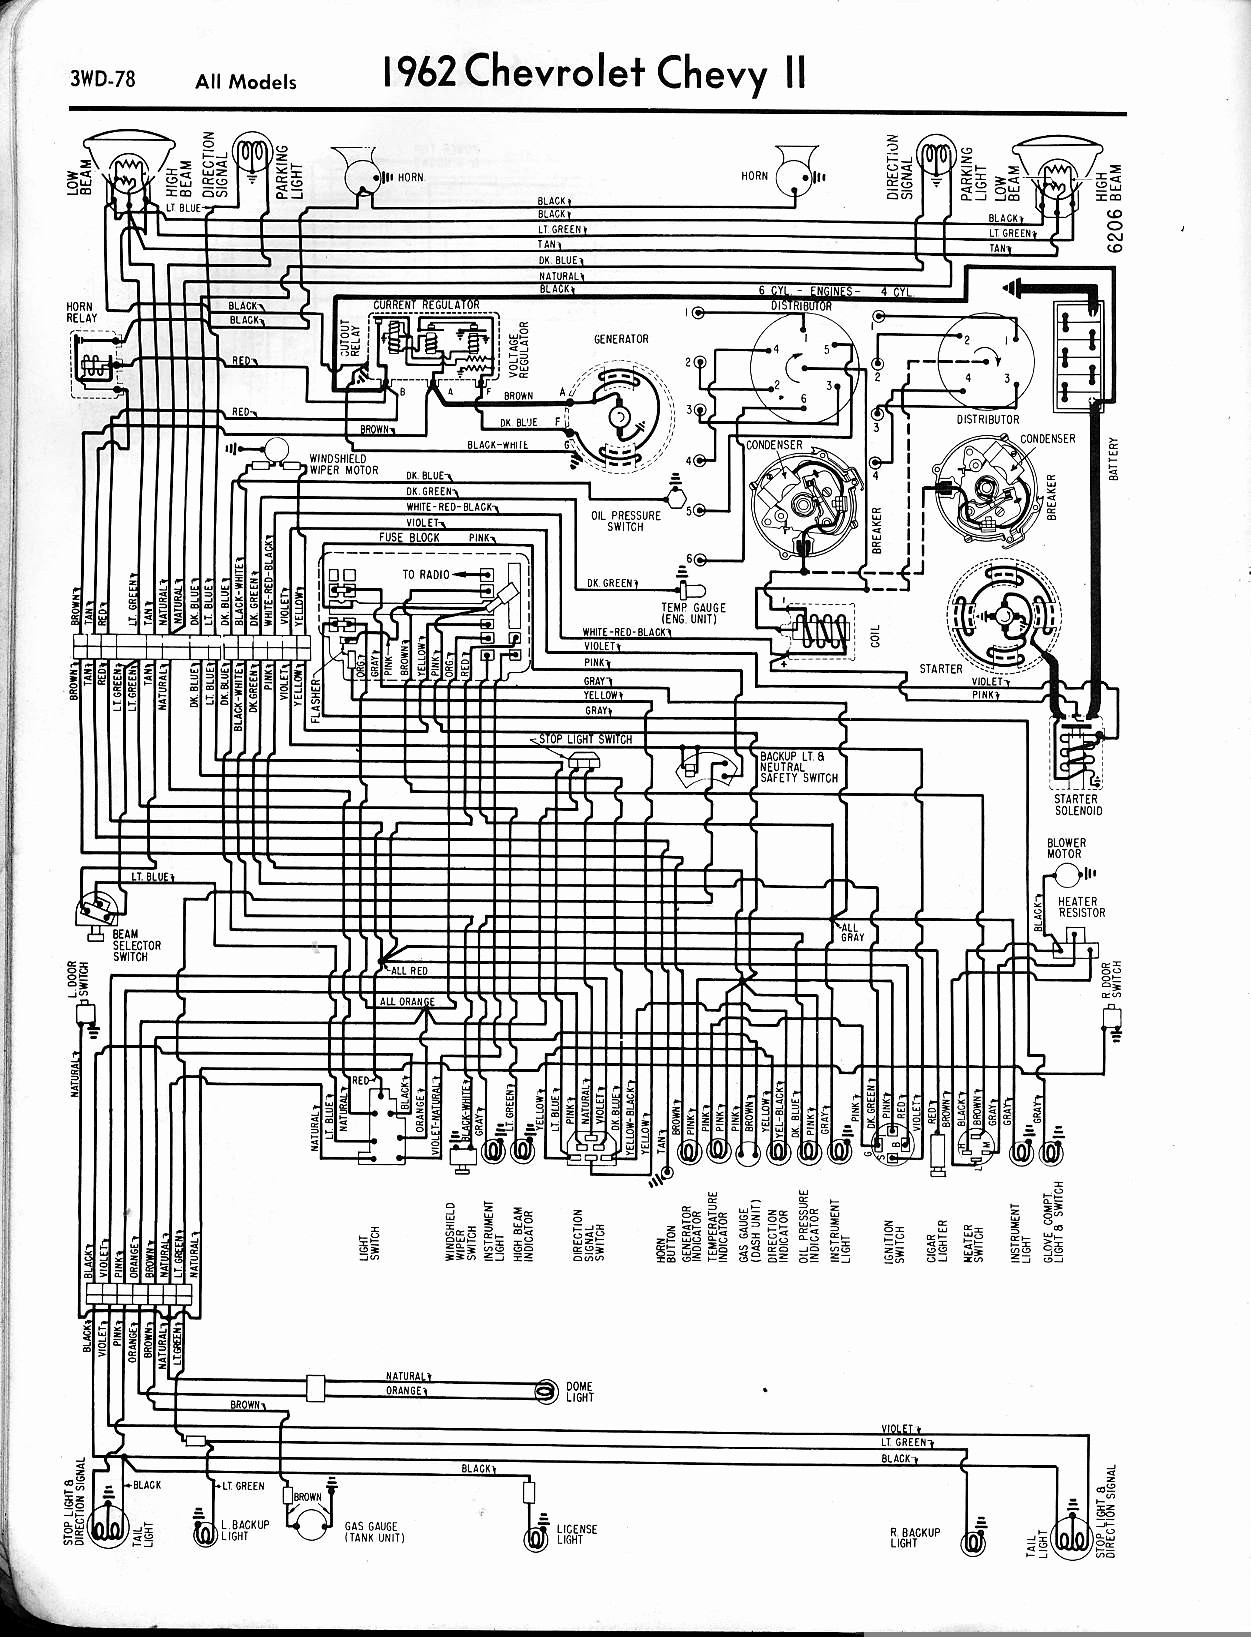 2000 Impala Engine Diagram Archive Of Automotive Wiring Chevrolet Harness For Trans Diagrams Trusted Rh Dafpods Co 34